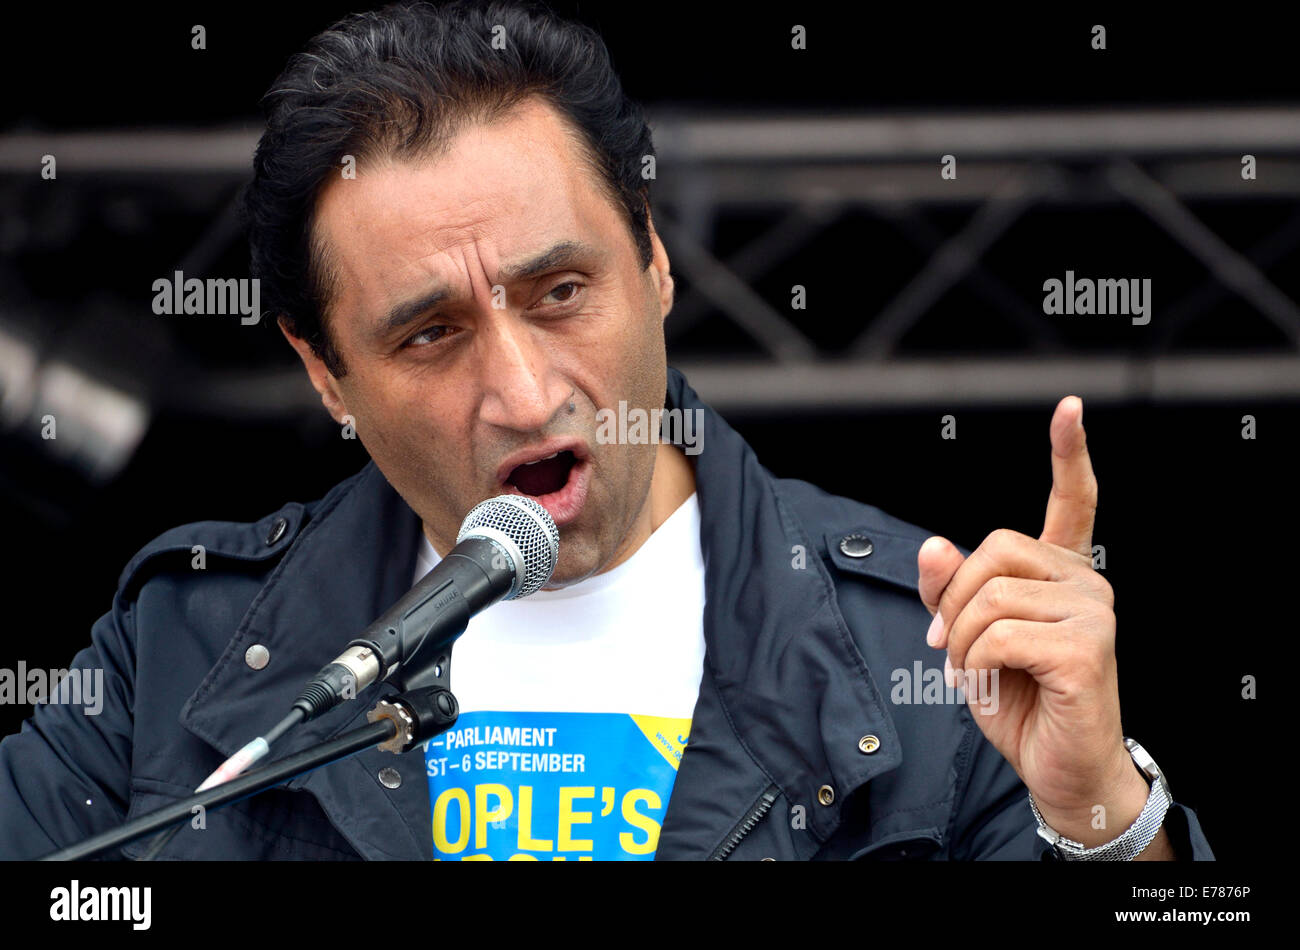 Dr Onkar Sahota (practising GP and member of the London Assembly for Ealing and Hillingdon) speaking at a rally - Stock Image